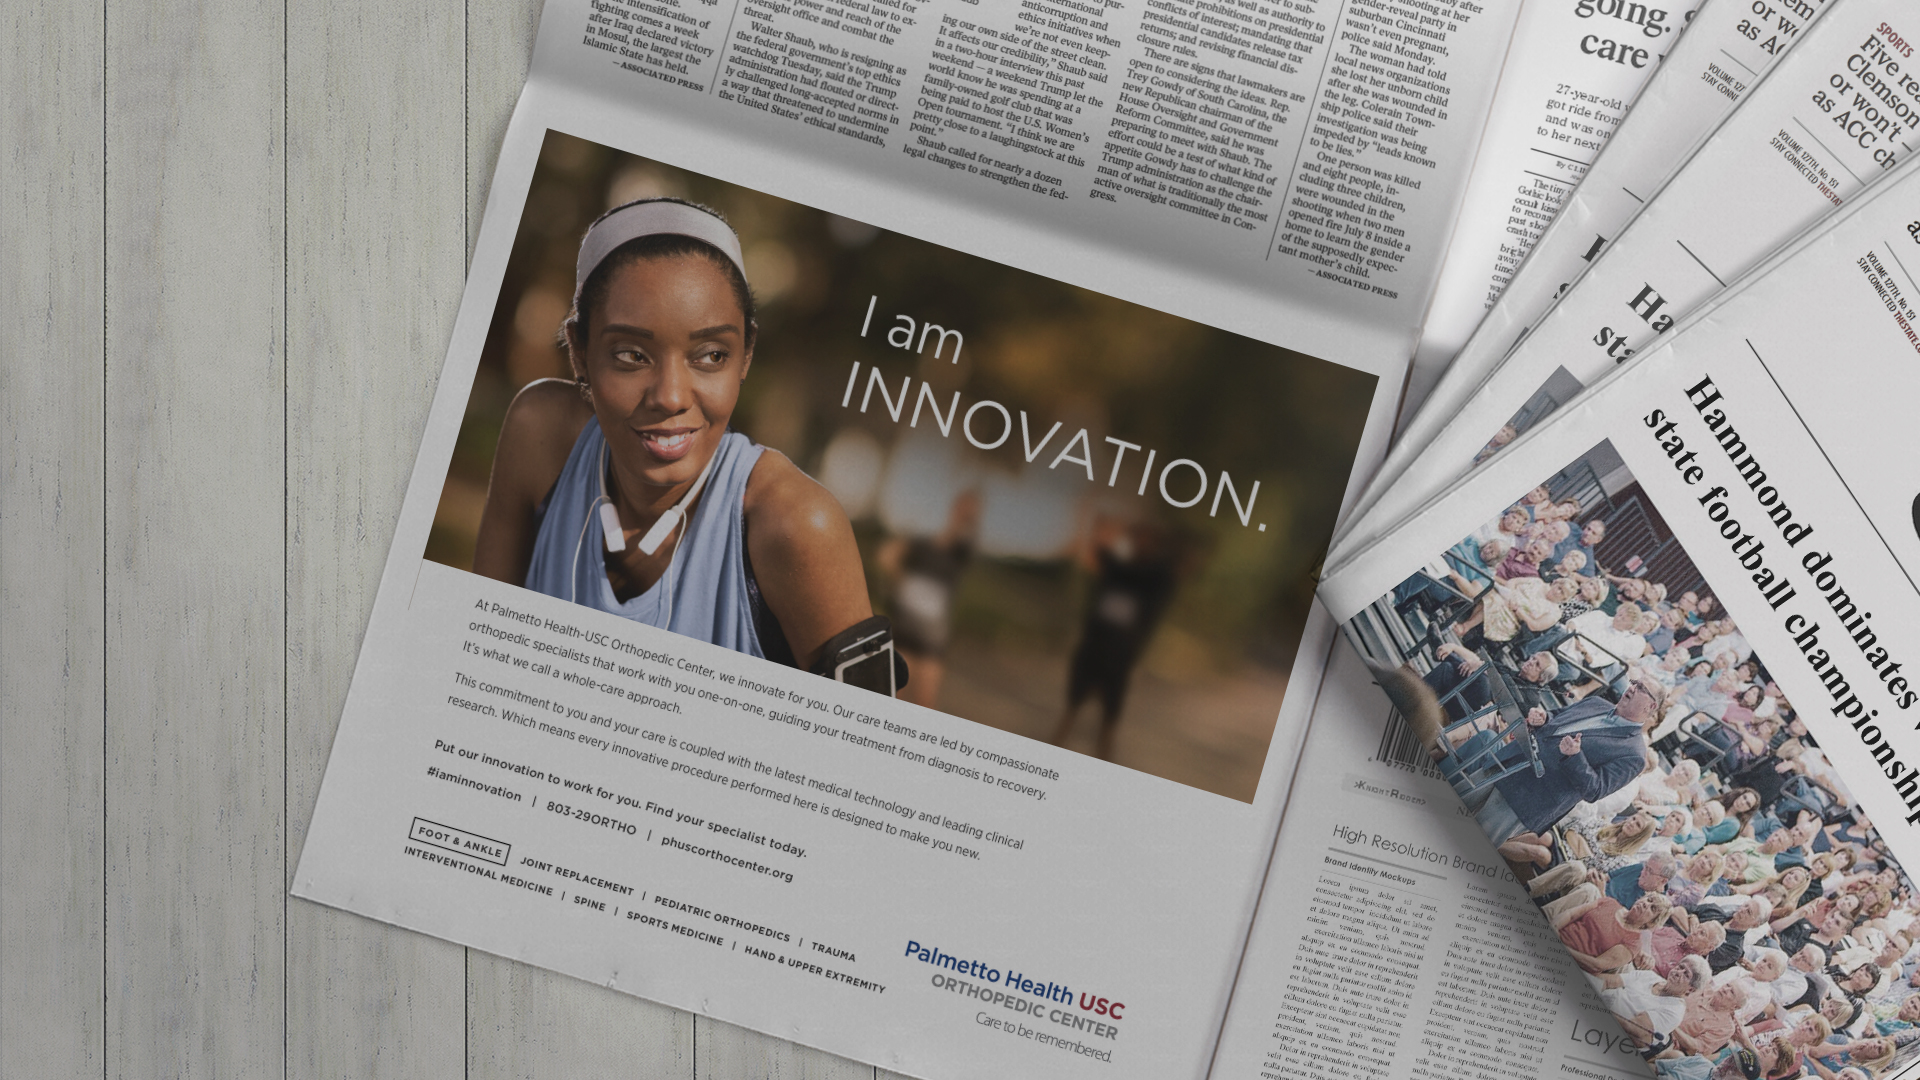 iamINNOVATION_newspaper_runner